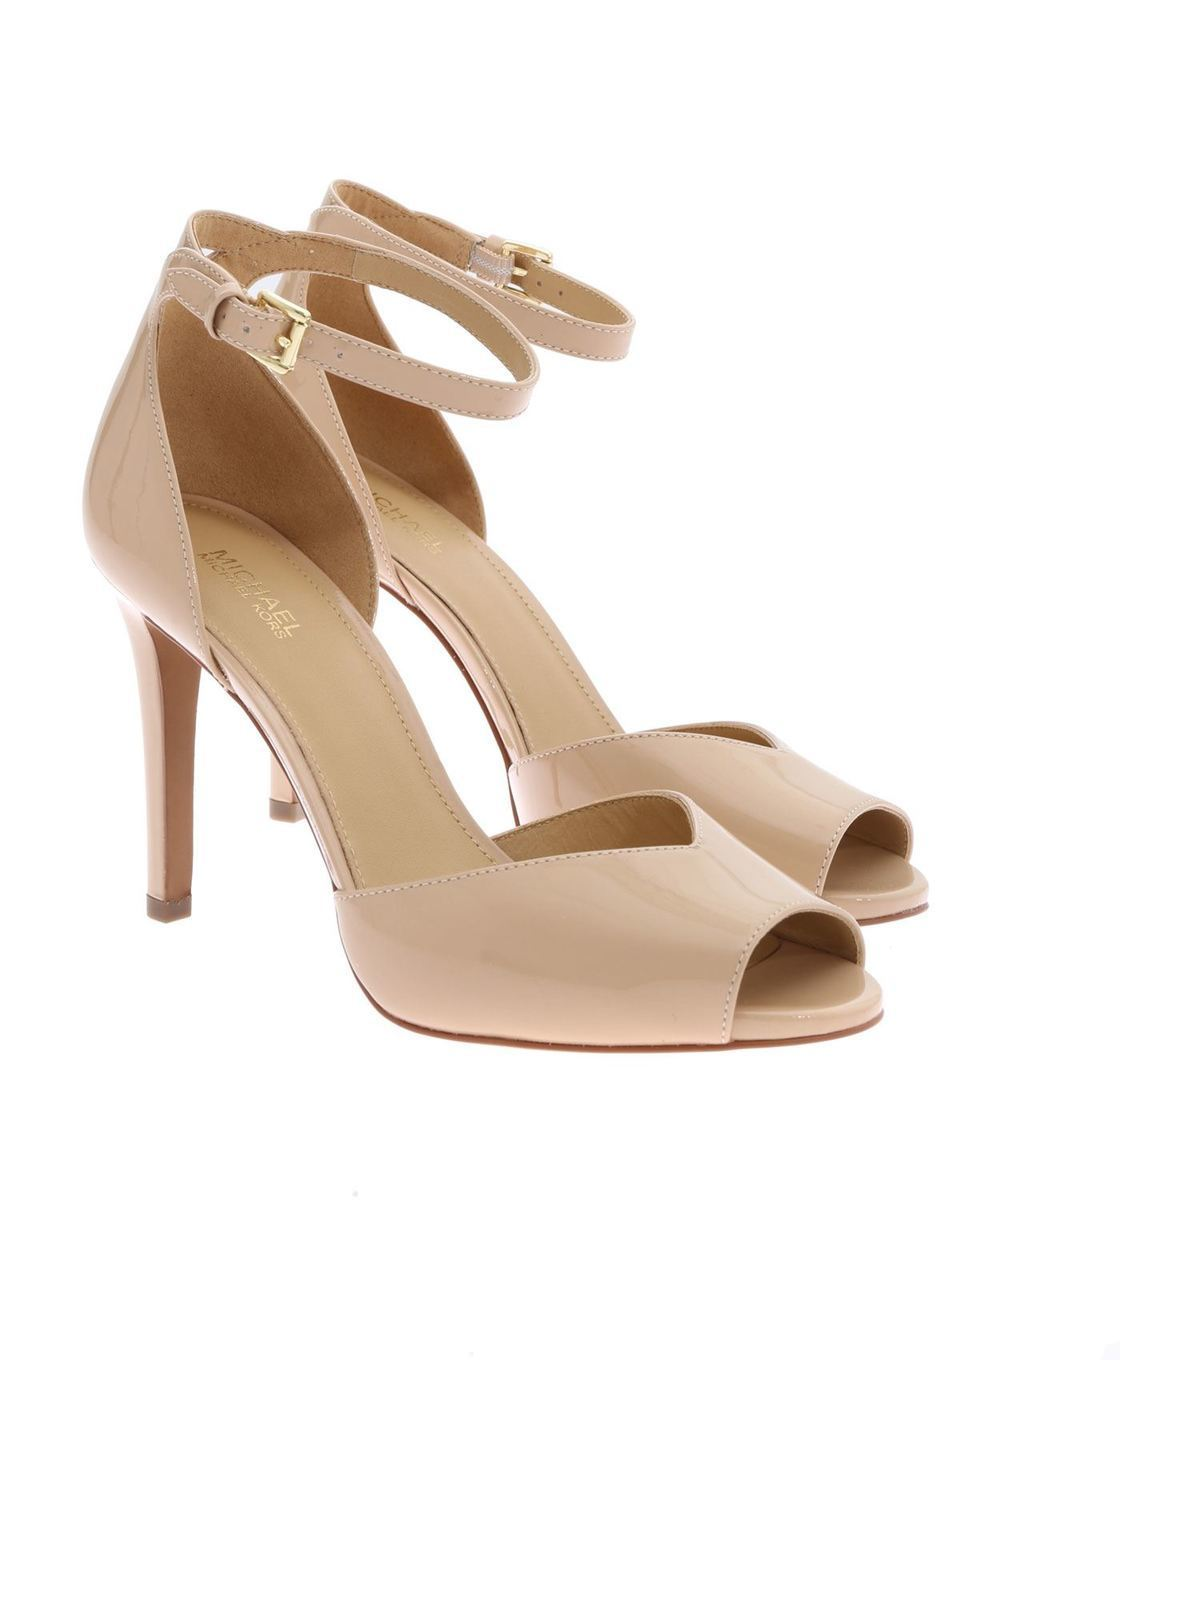 Michael Kors - Cambria patent leather